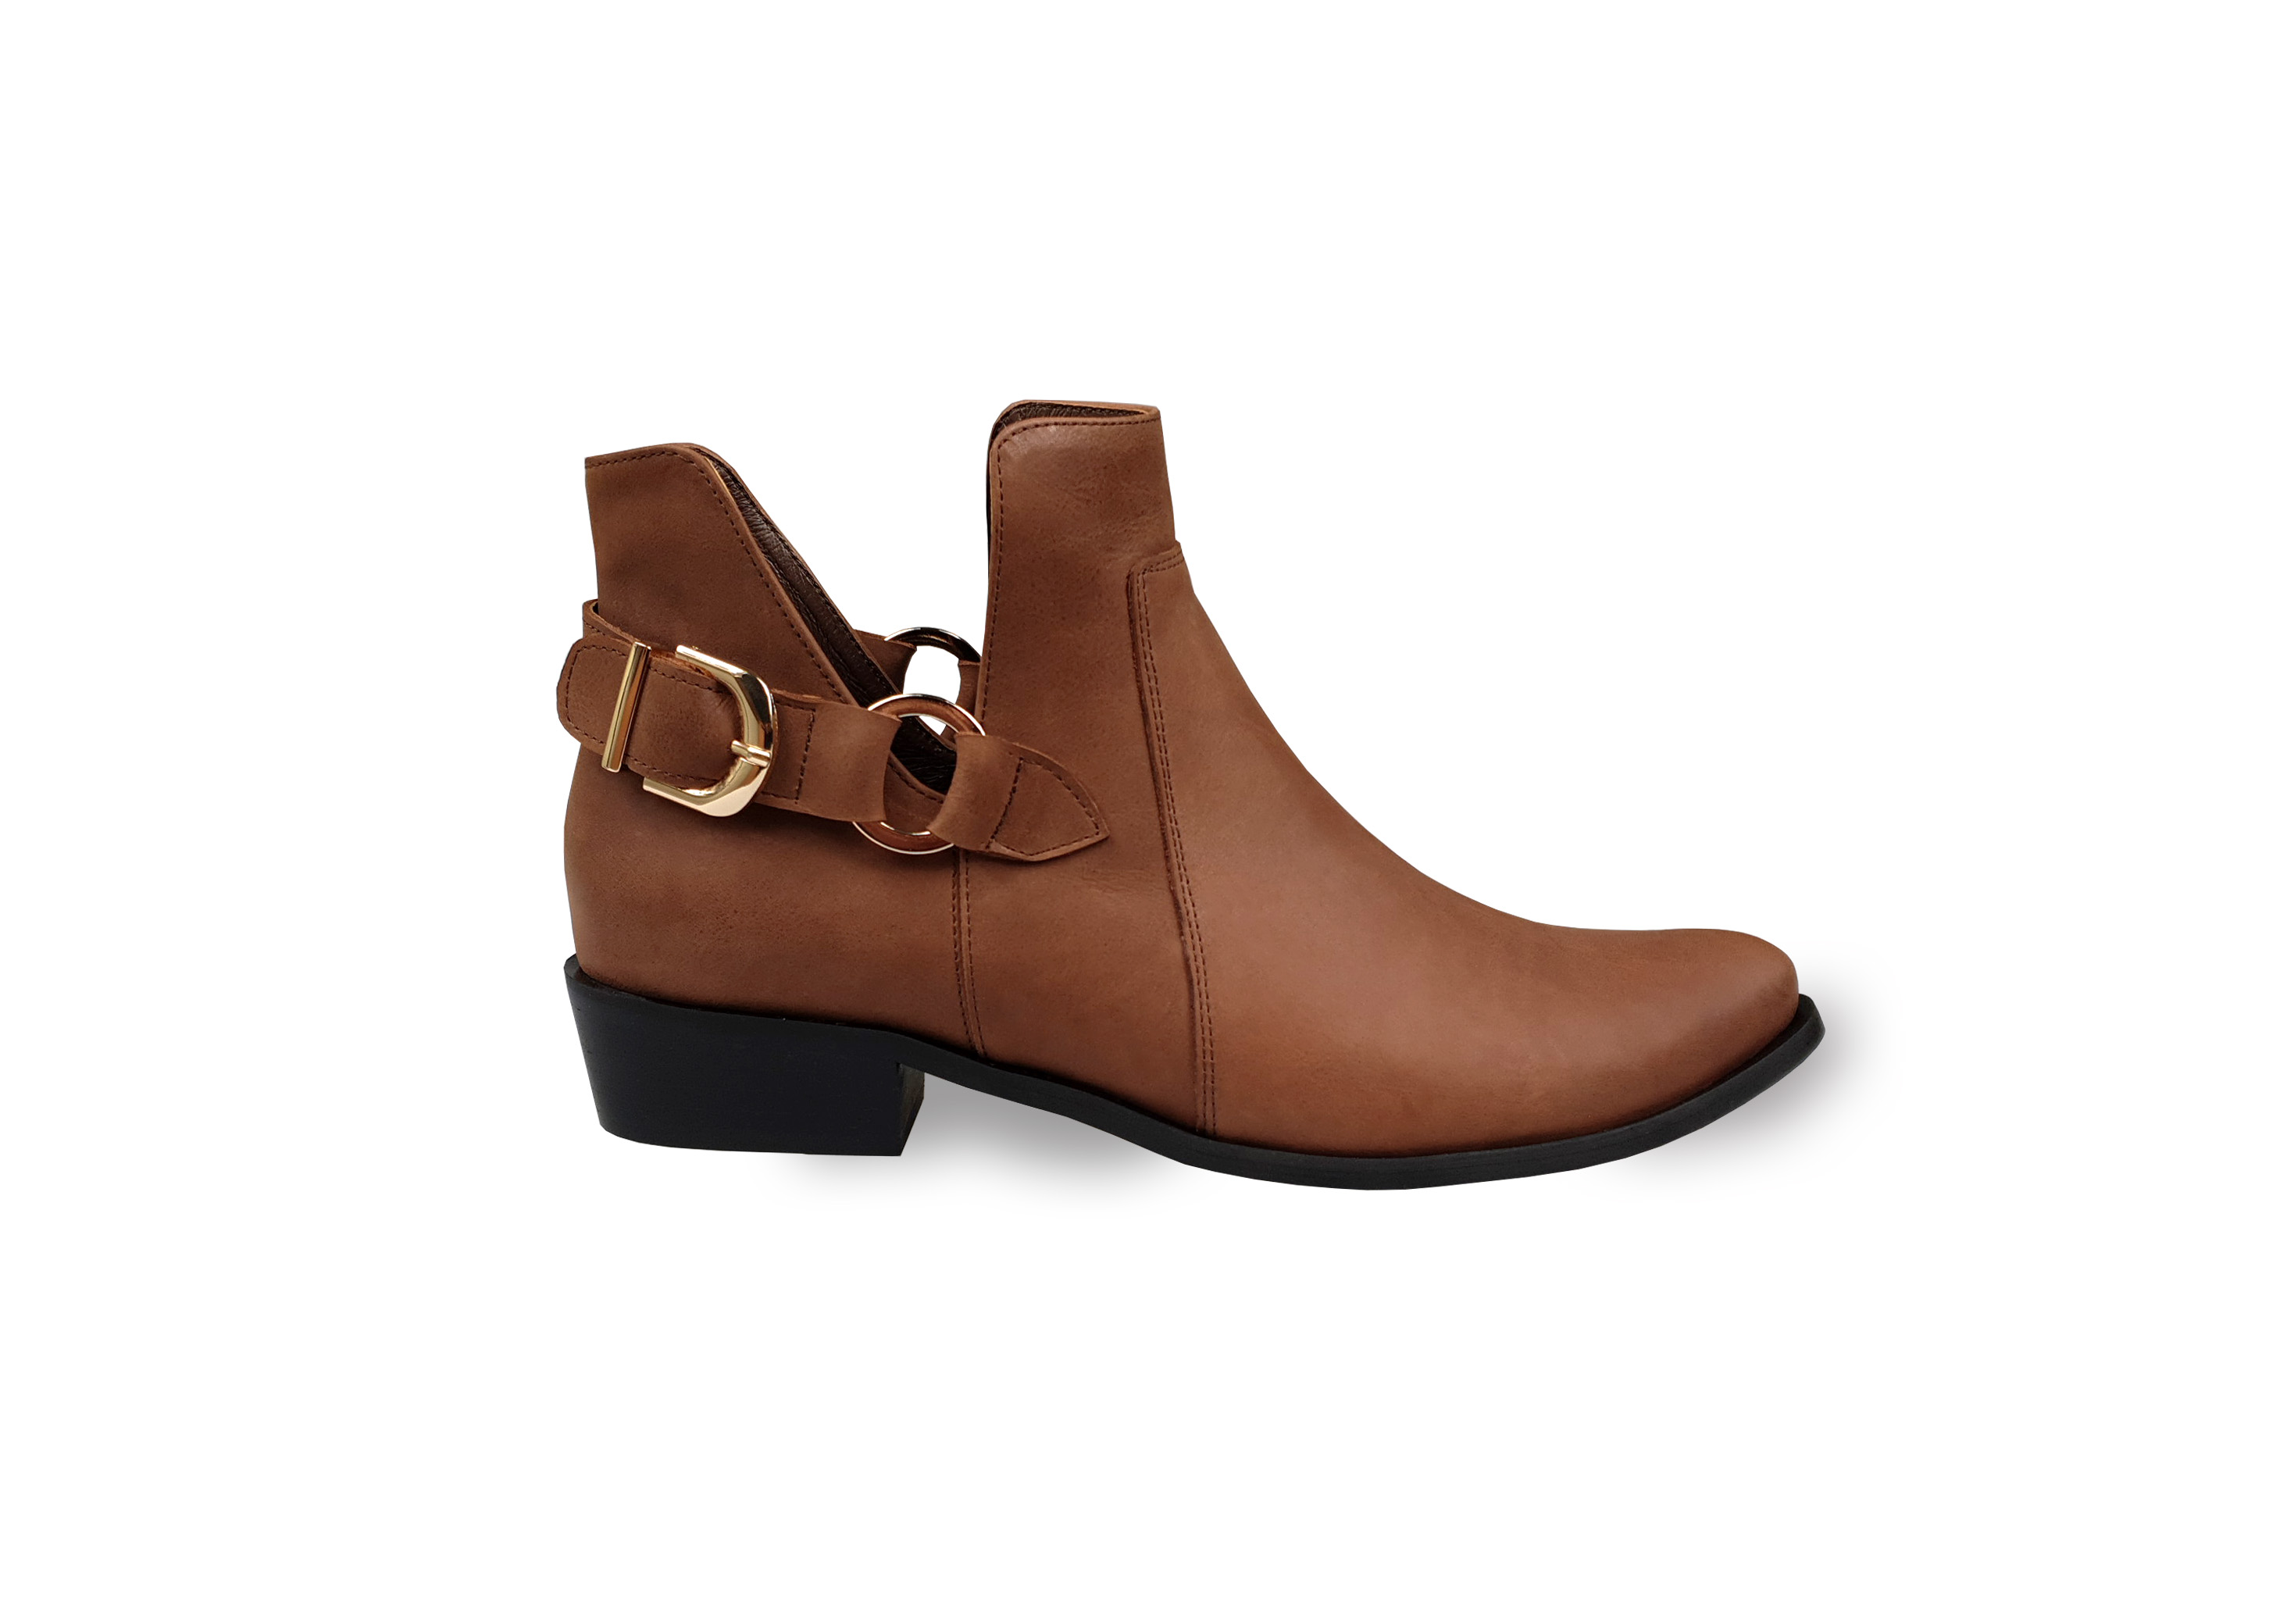 Cara tan leather ankle boots